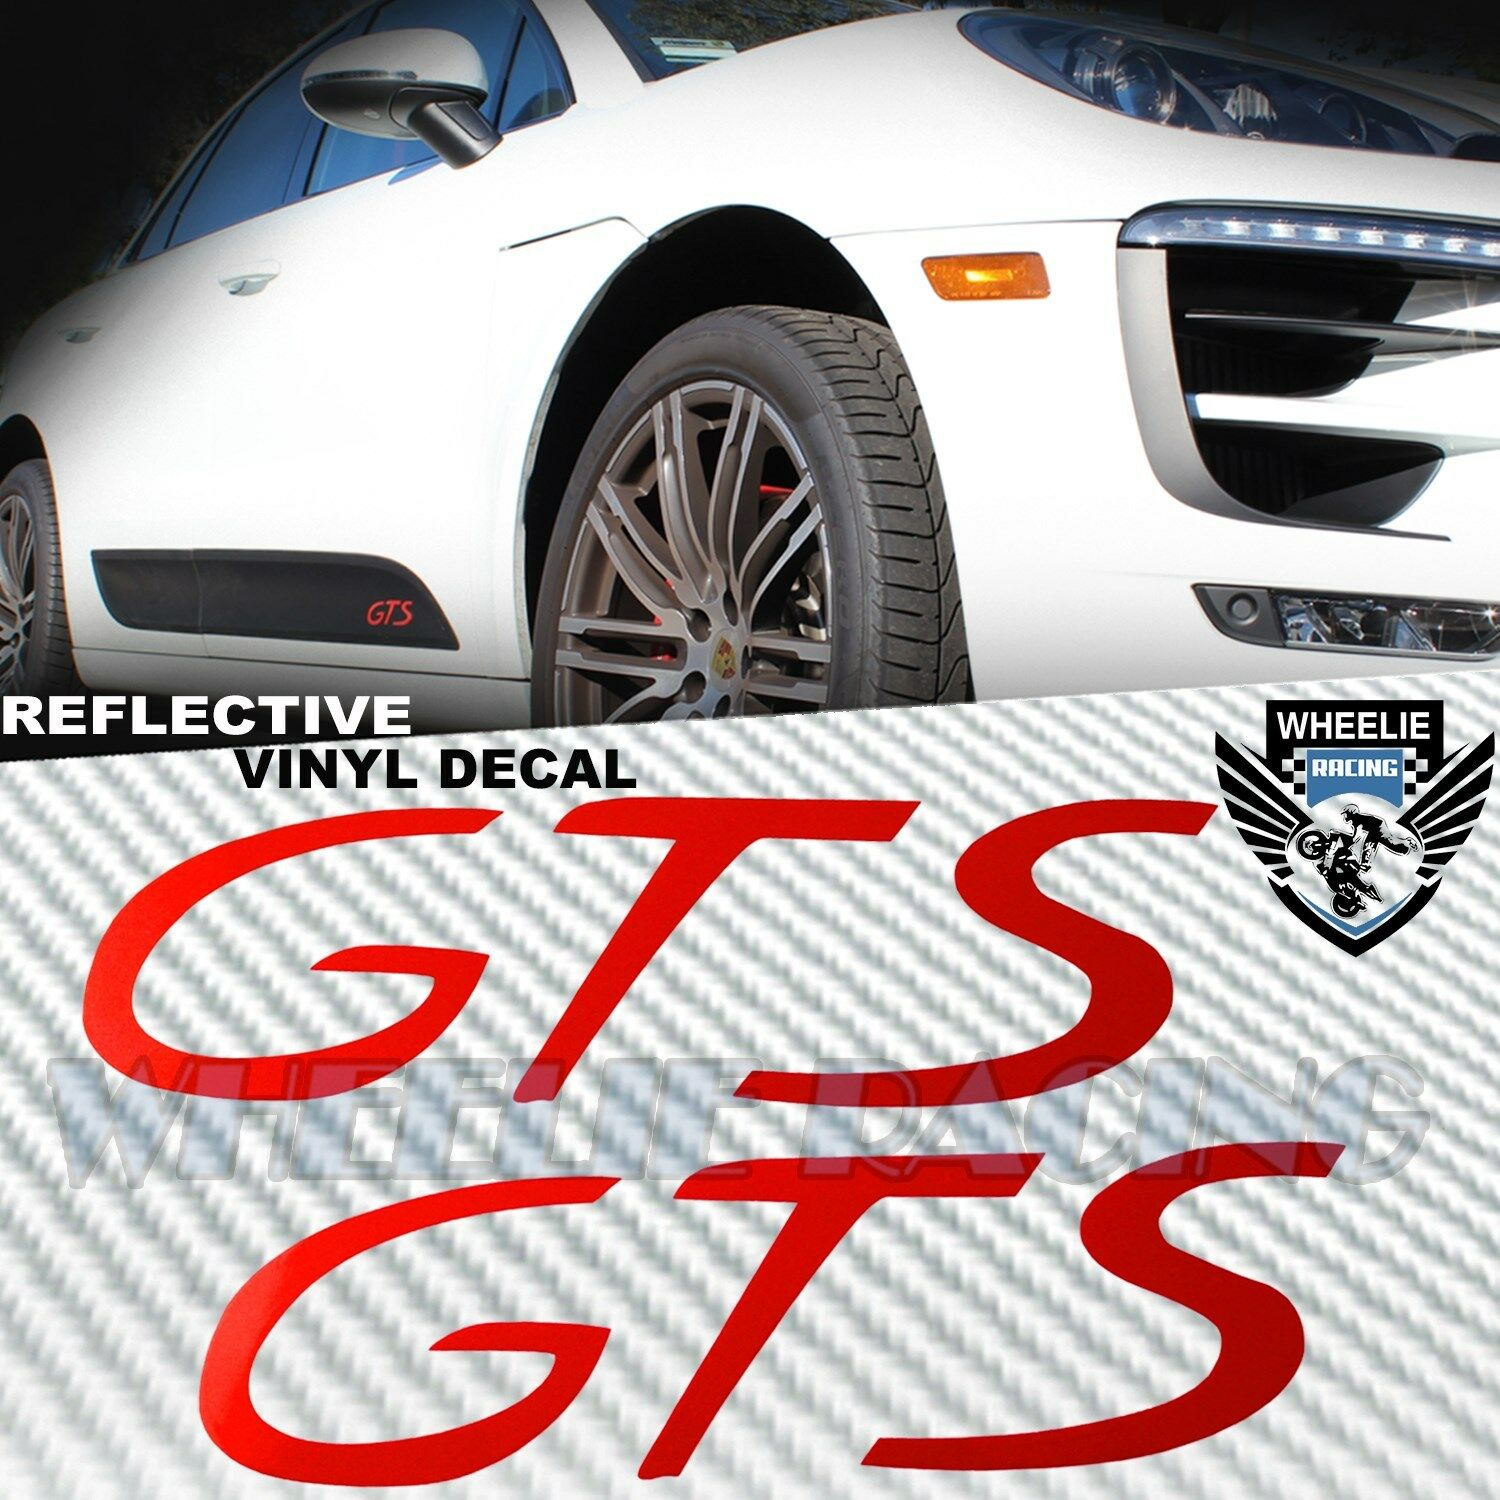 Details about left right sideblade body reflective vinyl sticker kit for porsche gts logo red